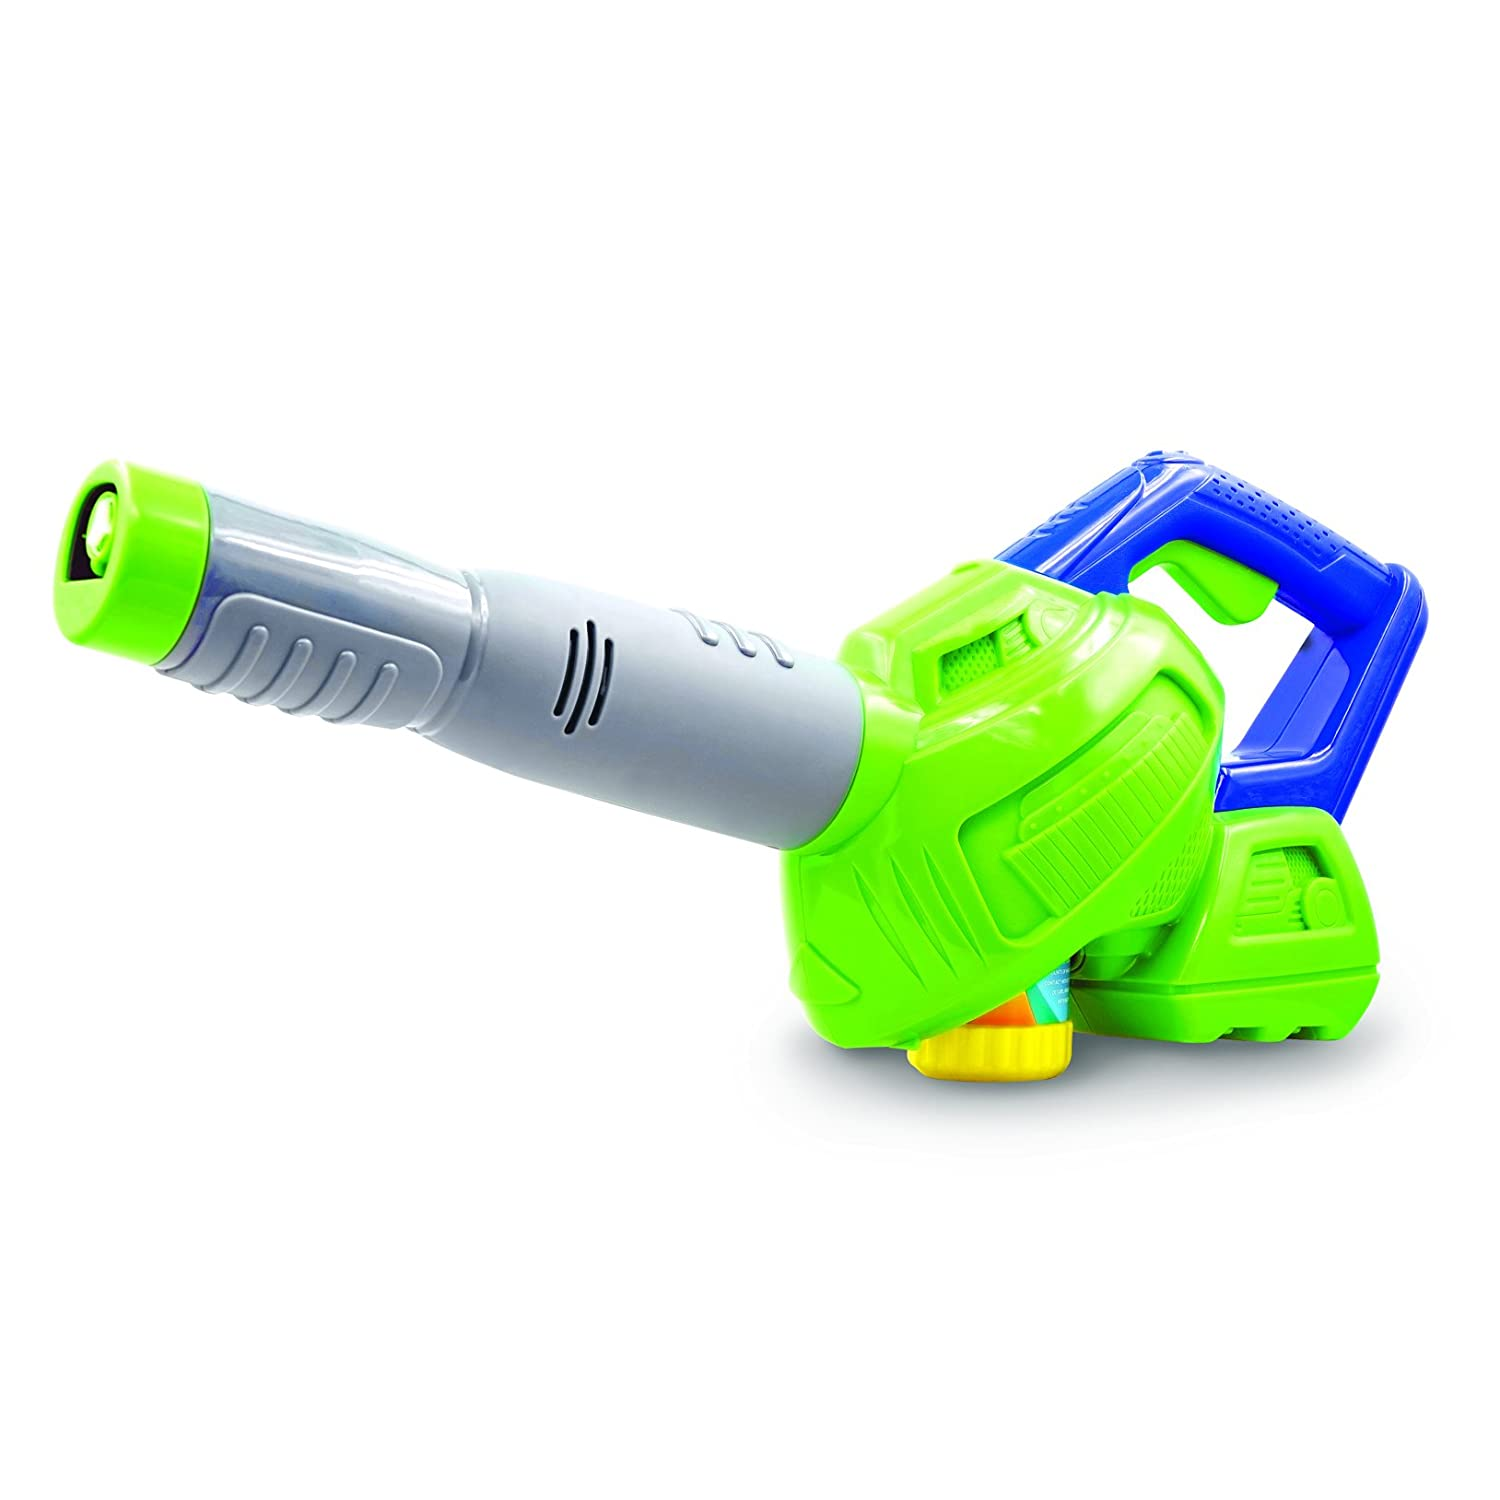 Maxx Bubbles Bubble-N-Go Bubble Leaf Blower with Solution